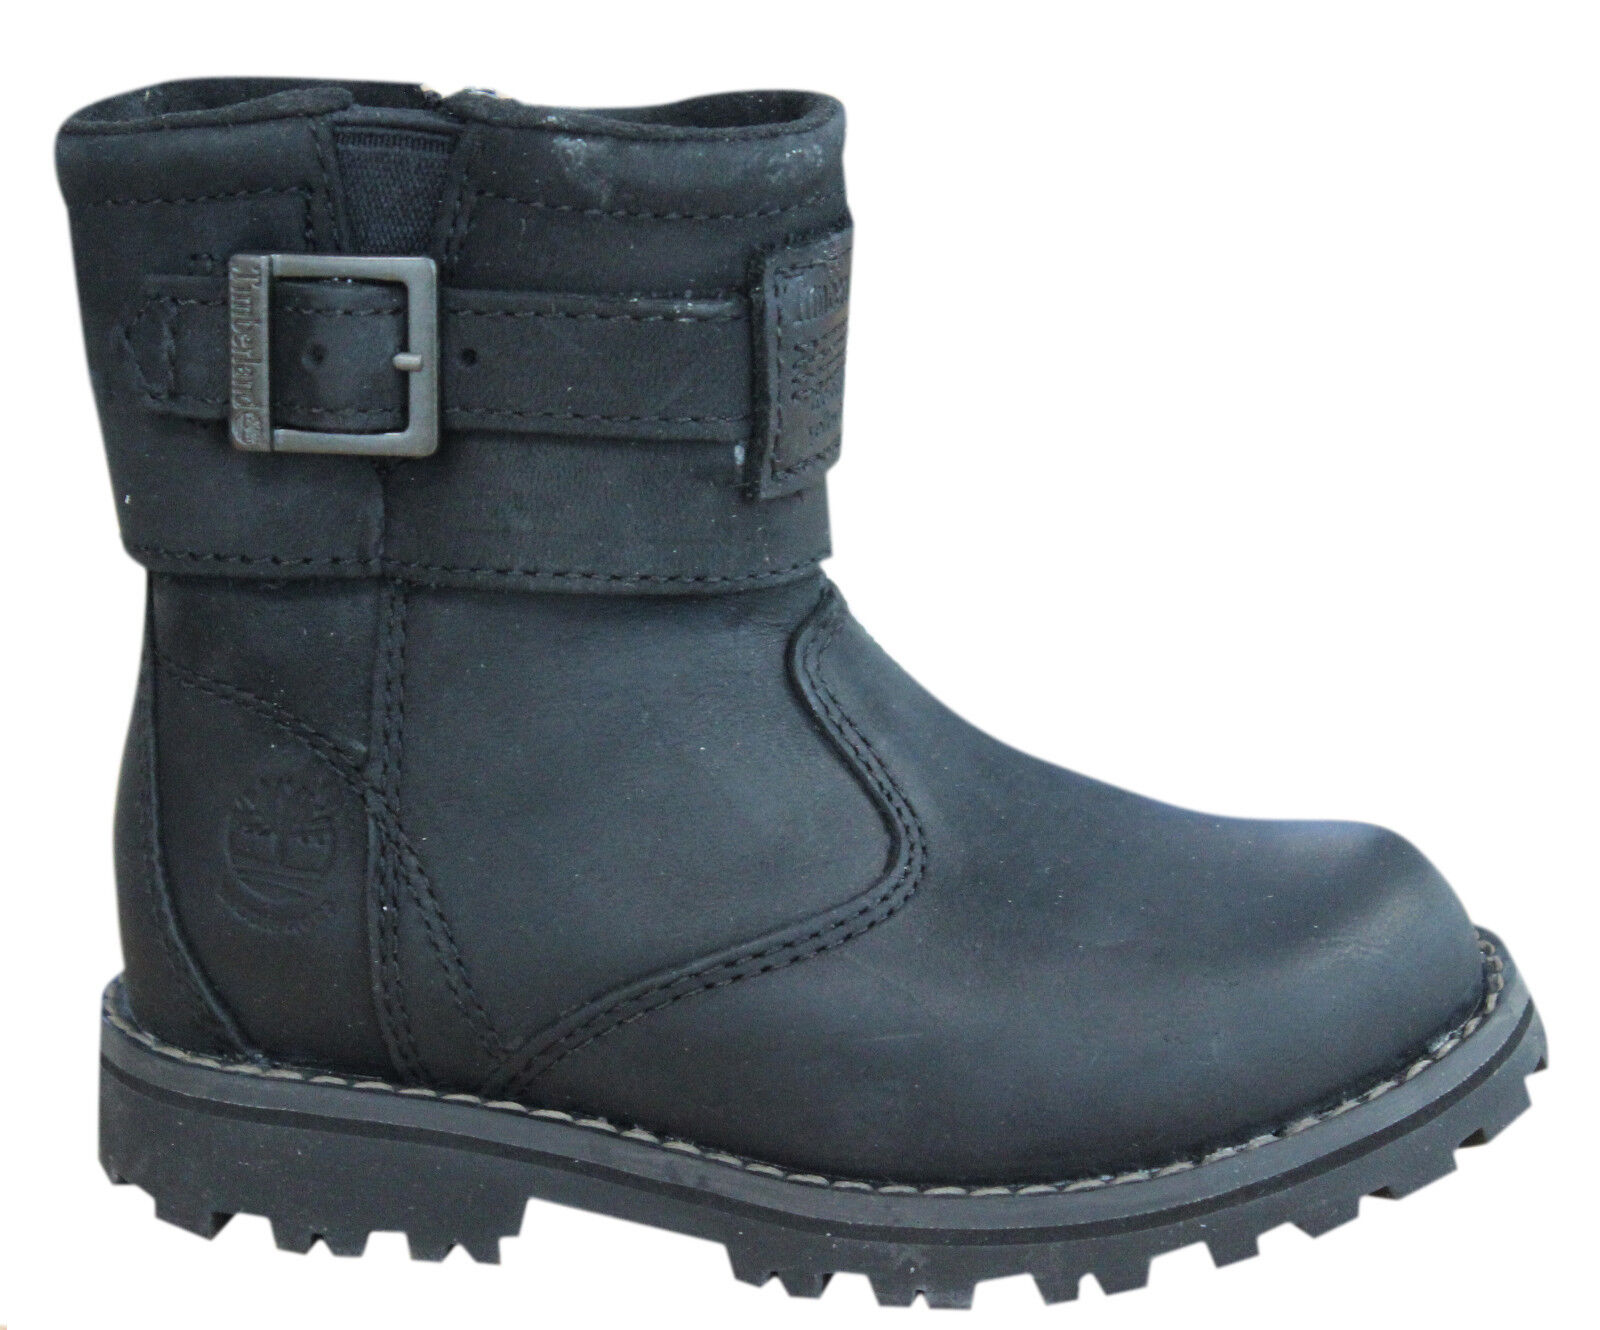 Details about Timberland Earthkeepers EK Asphalt Trail Waterproof Toddlers Boots 8388R B73C